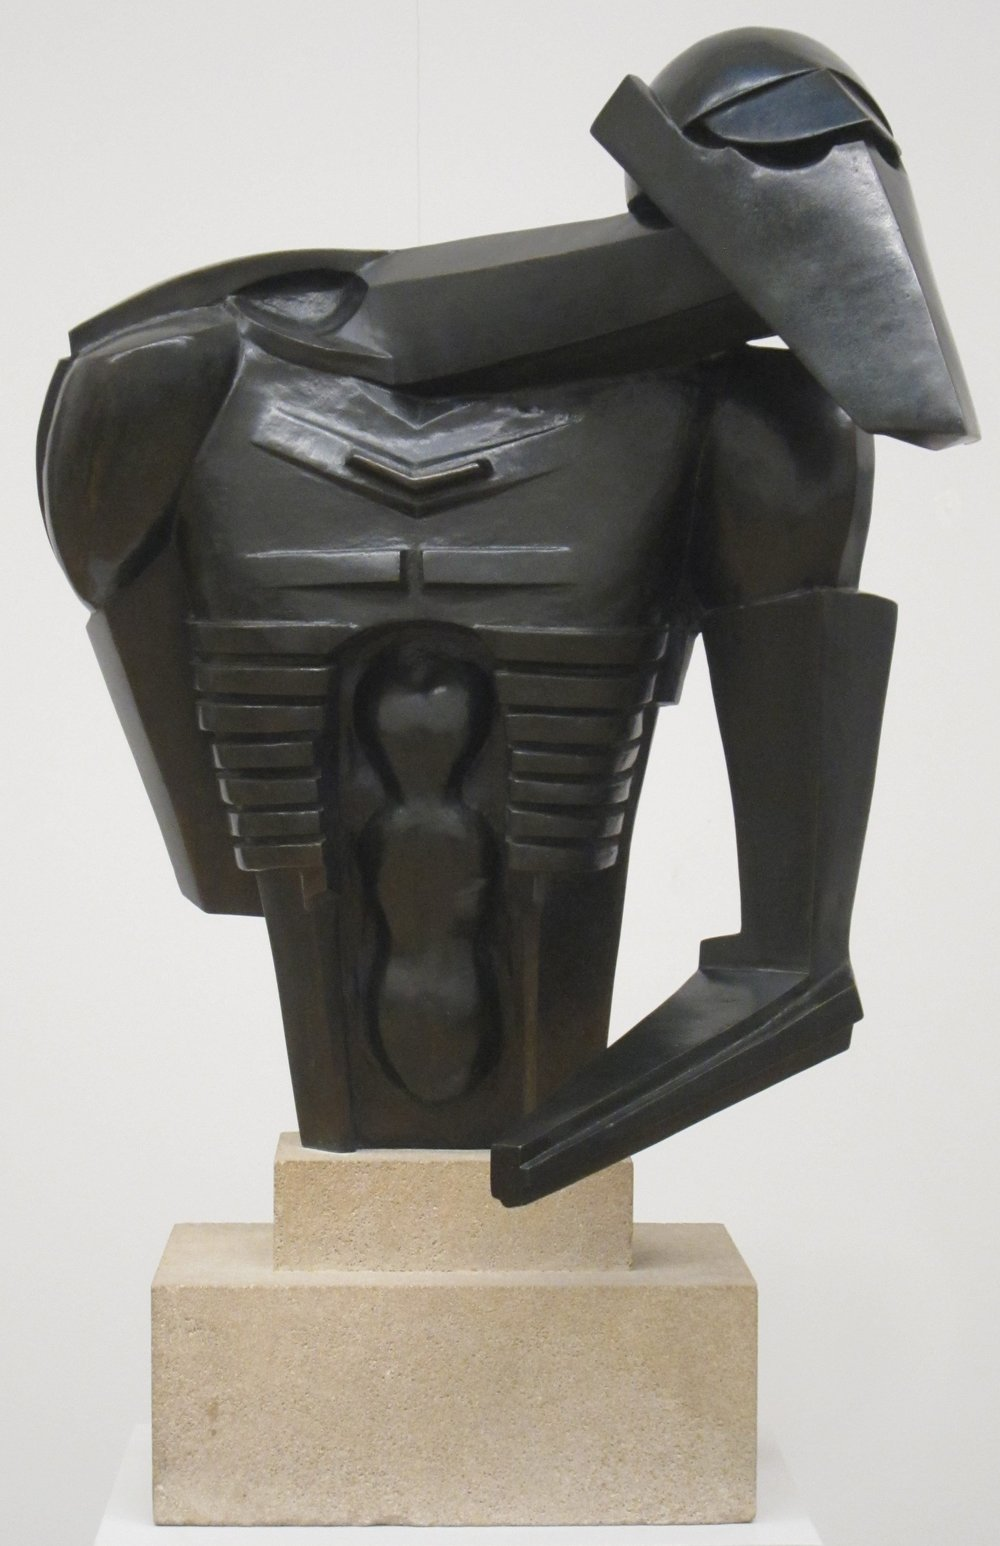 Jacob Epstein, The Rock Drill, 1913–1916, Original destroyed by the sculptor, Reconstructed in 1974, Tate Britain.